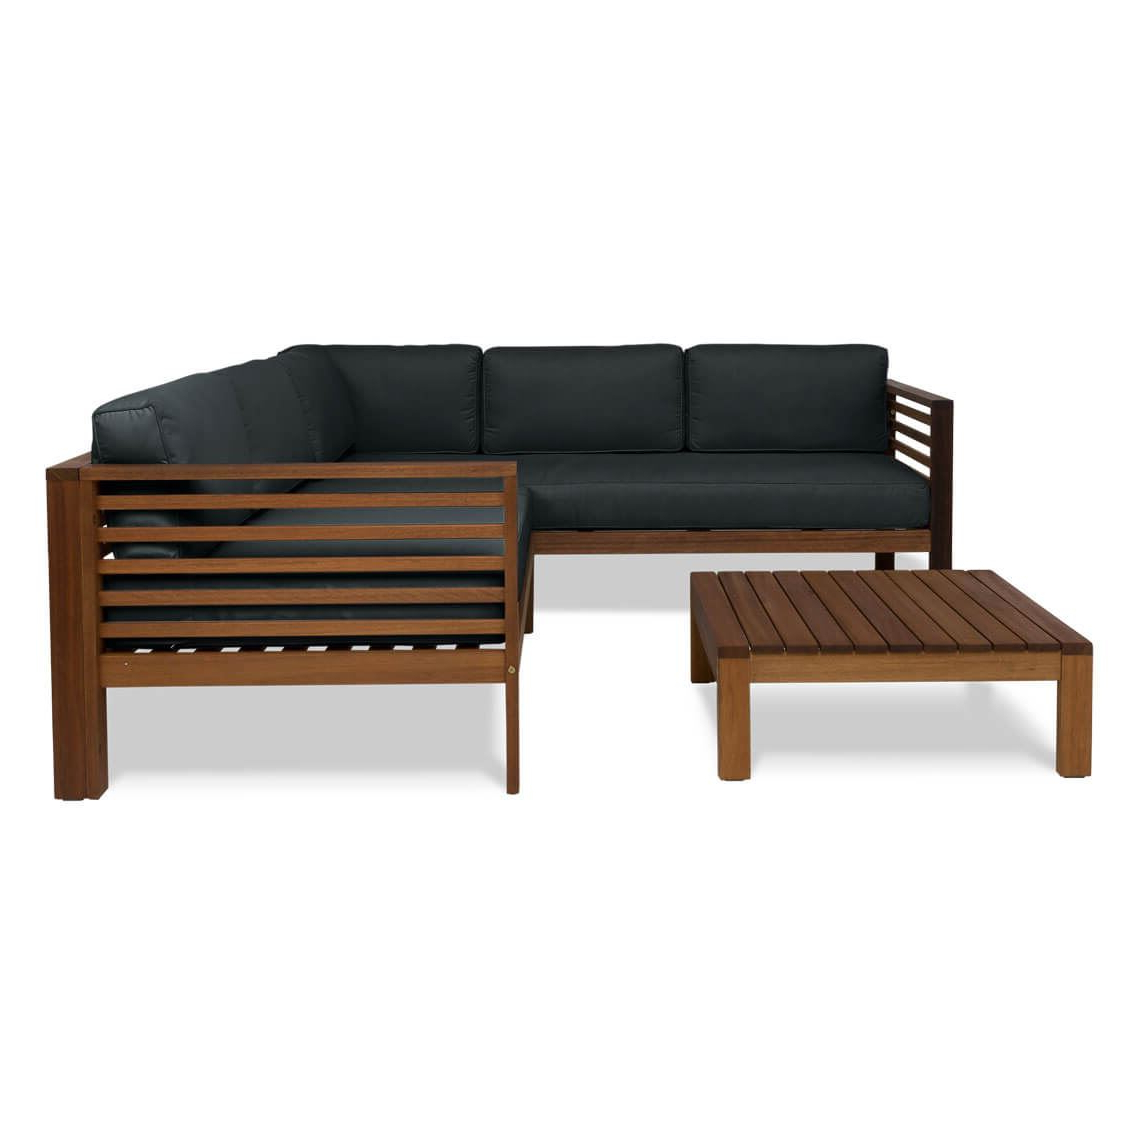 Newest Olinda 4 Piece Teak Sectionals Seating Group With Cushions In Milford 3 Piece Outdoor Lounge Set With Right Arm Facing (View 13 of 25)